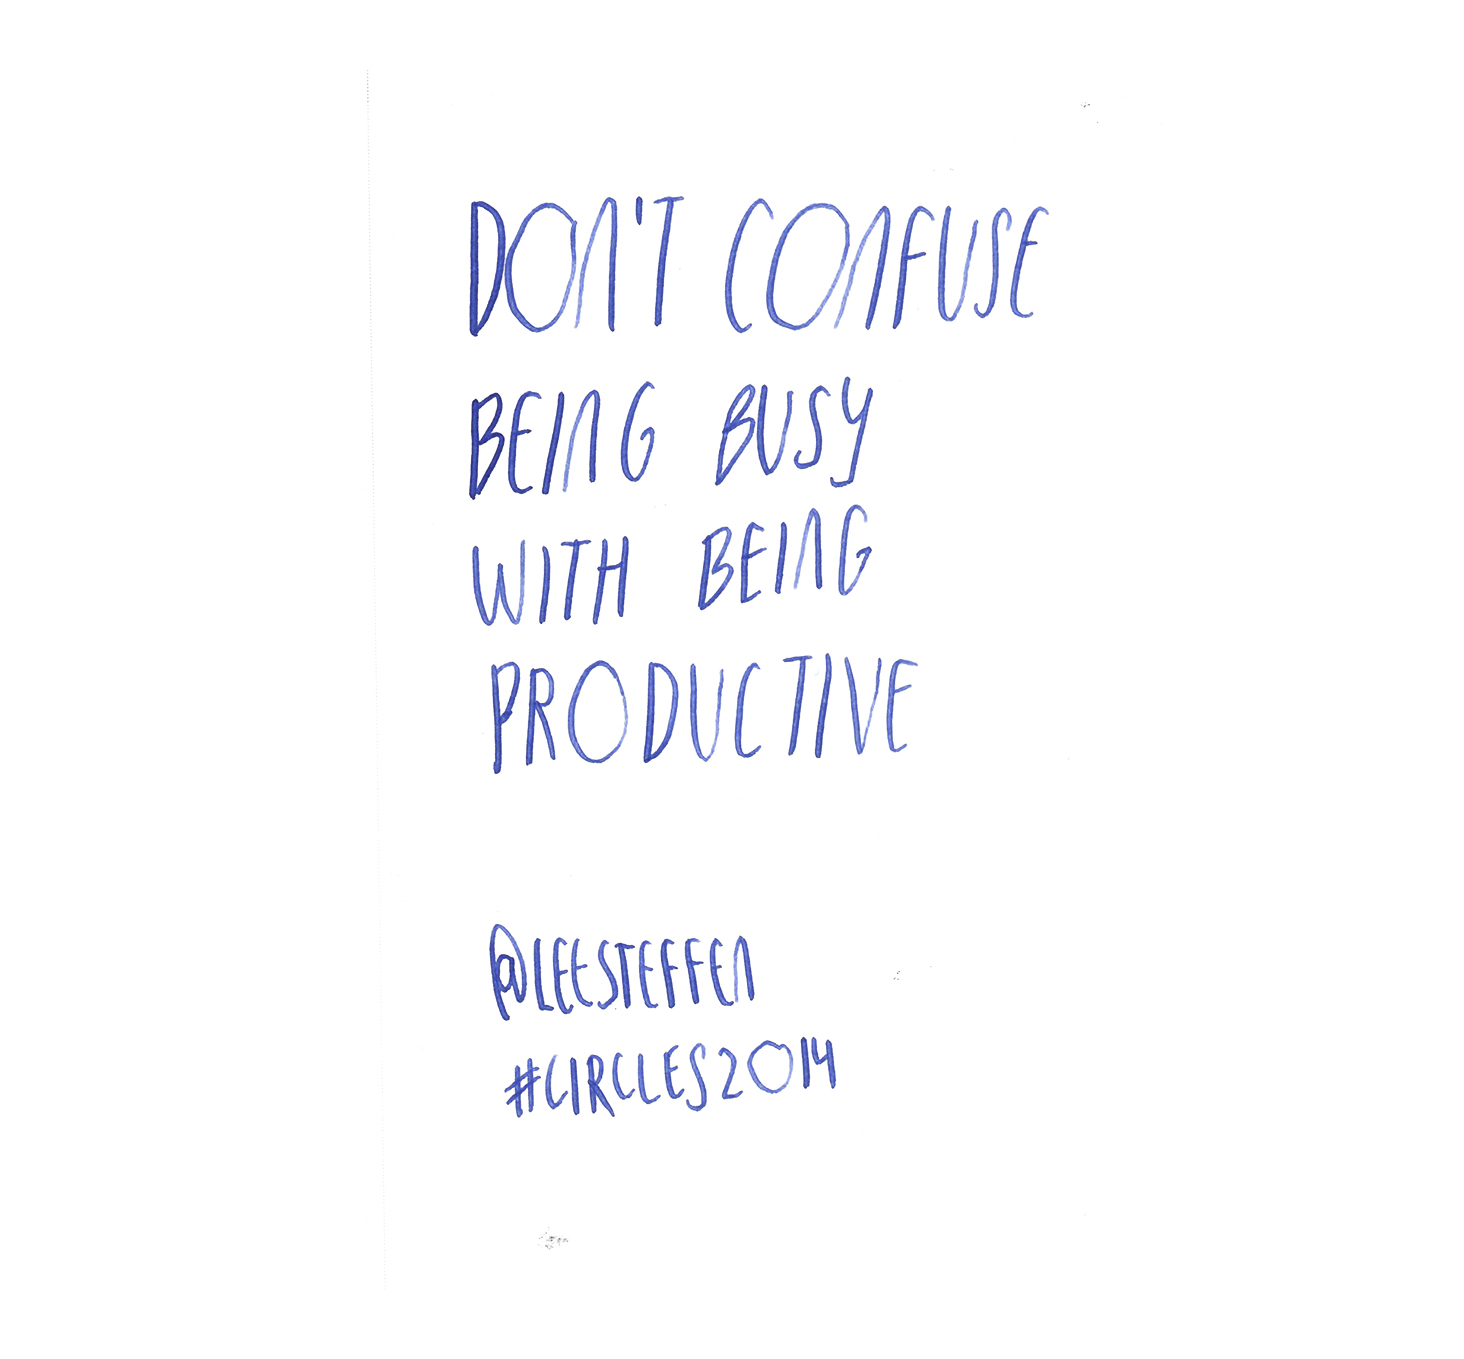 Don't confuse being busy with being productive - Lee Steffen @leesteffen quote from #circles2014 | type by alicia-carvalho.com